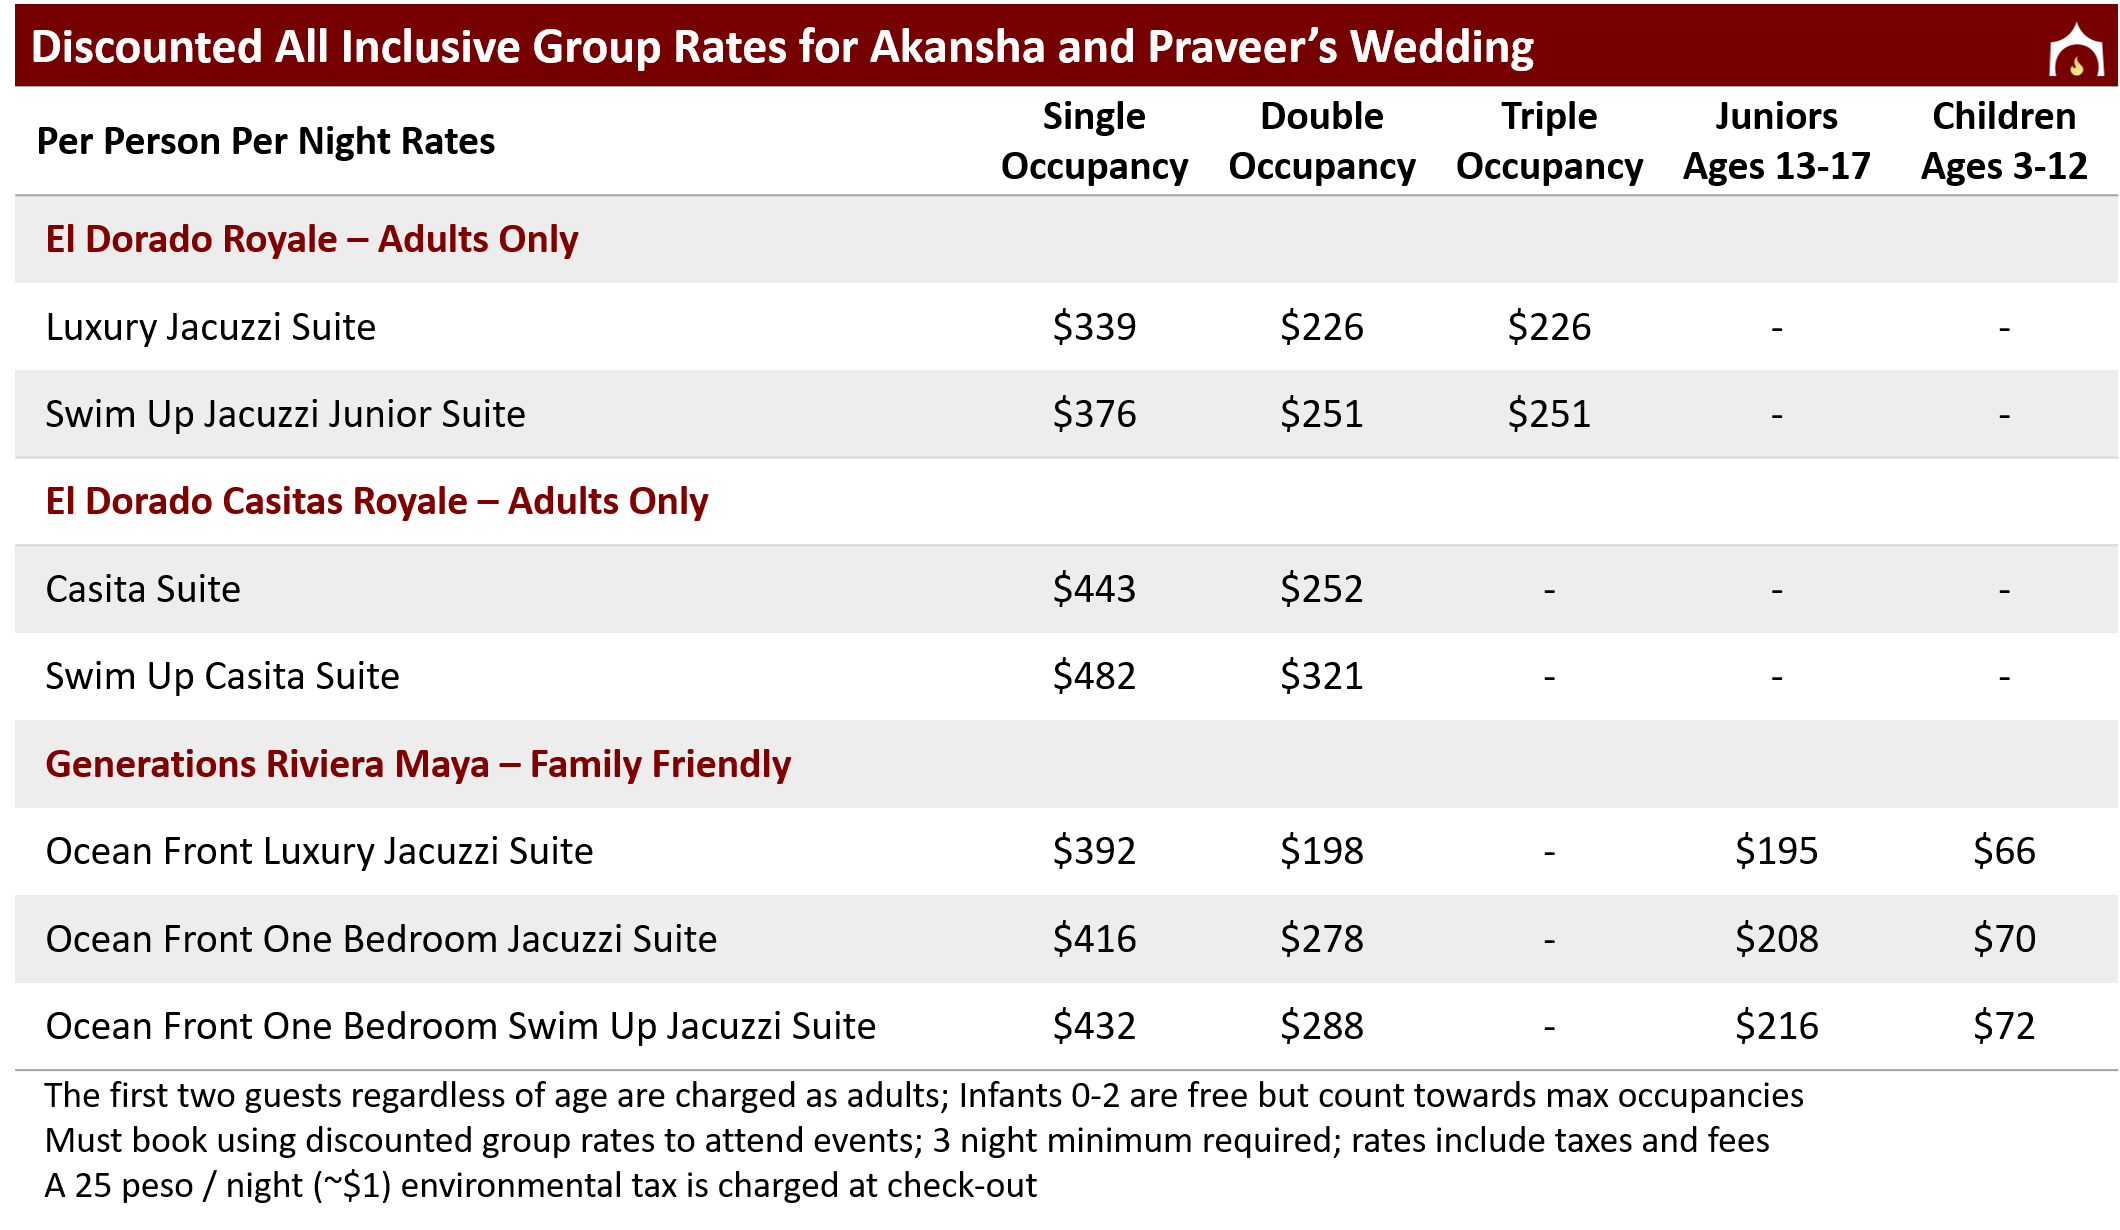 Discounted Group Rates for Akansha and Praveer's Wedding.png